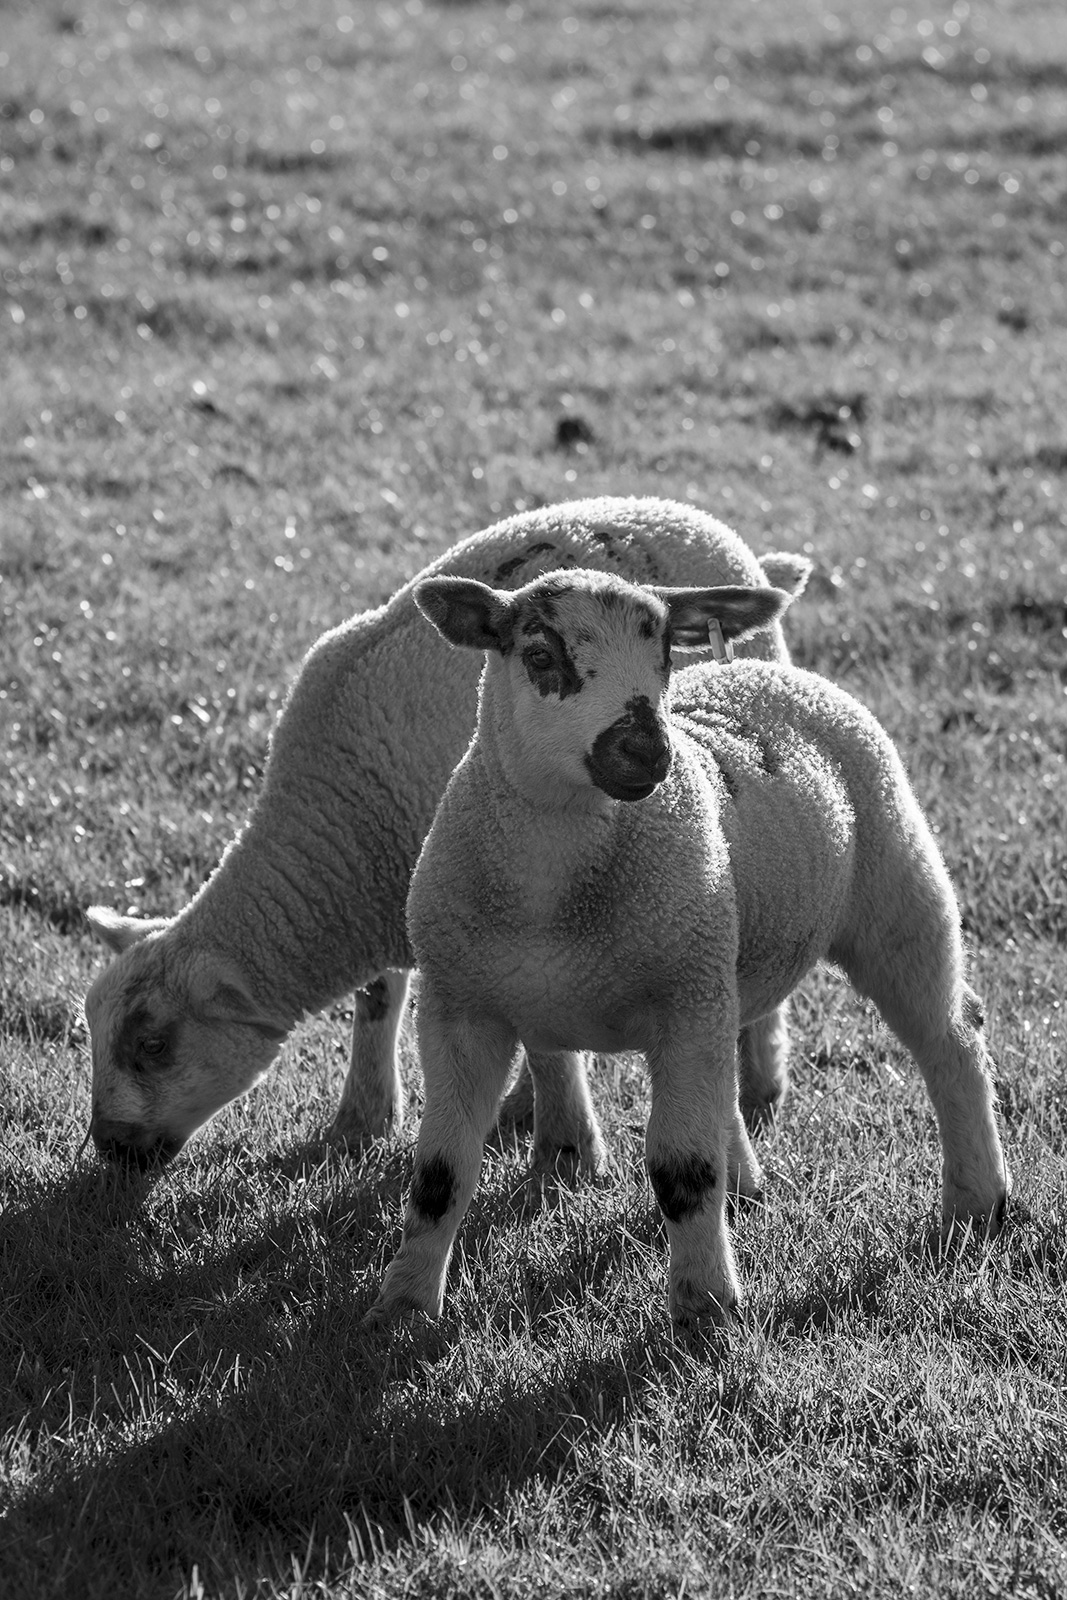 Two lambs in meadow one grazing one looking past camera to the right, back lit sunset scene, black and white rural farm animal photograph Poynings West Sussex UK ©P. Maton 2019 eyeteeth.net